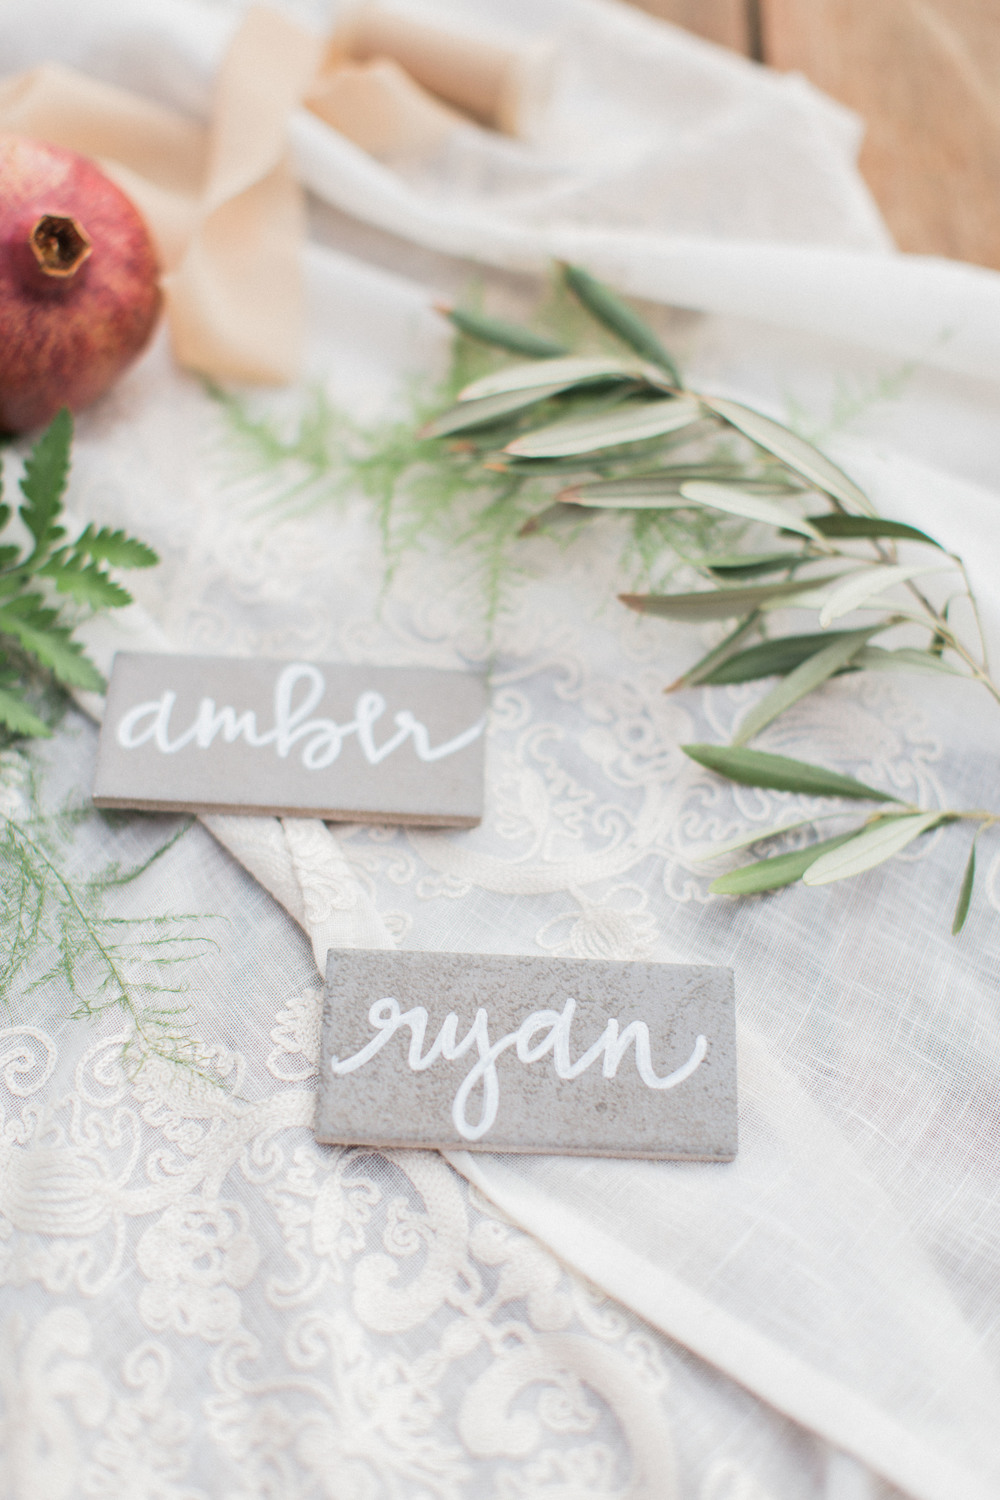 wedding-calligraphy-place-cards-sea-calligraphy.jpg